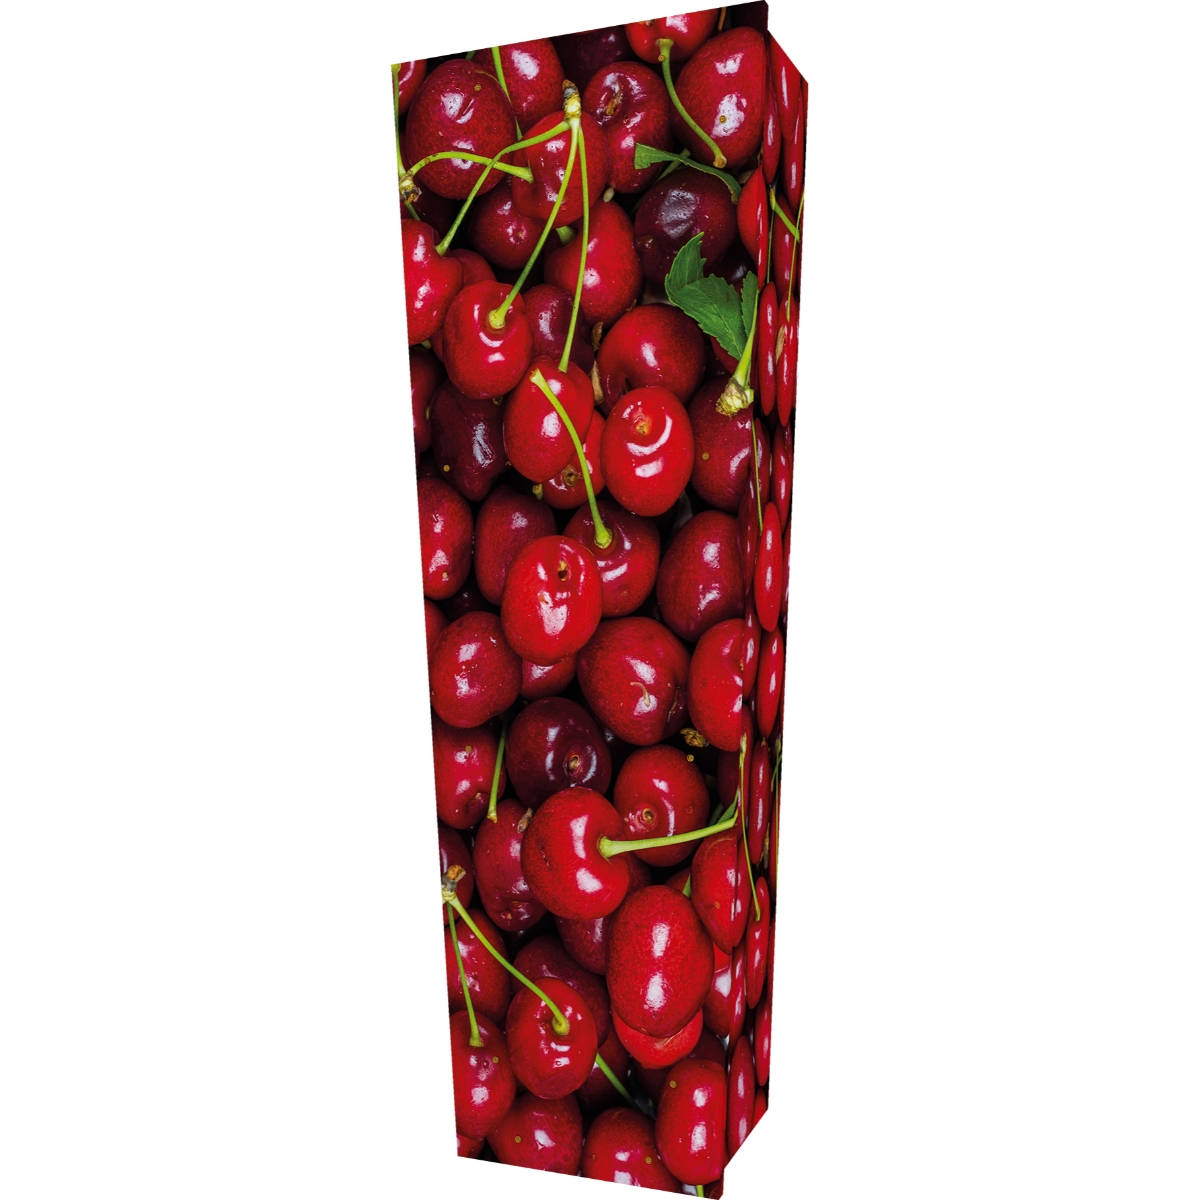 Cherries Coffin